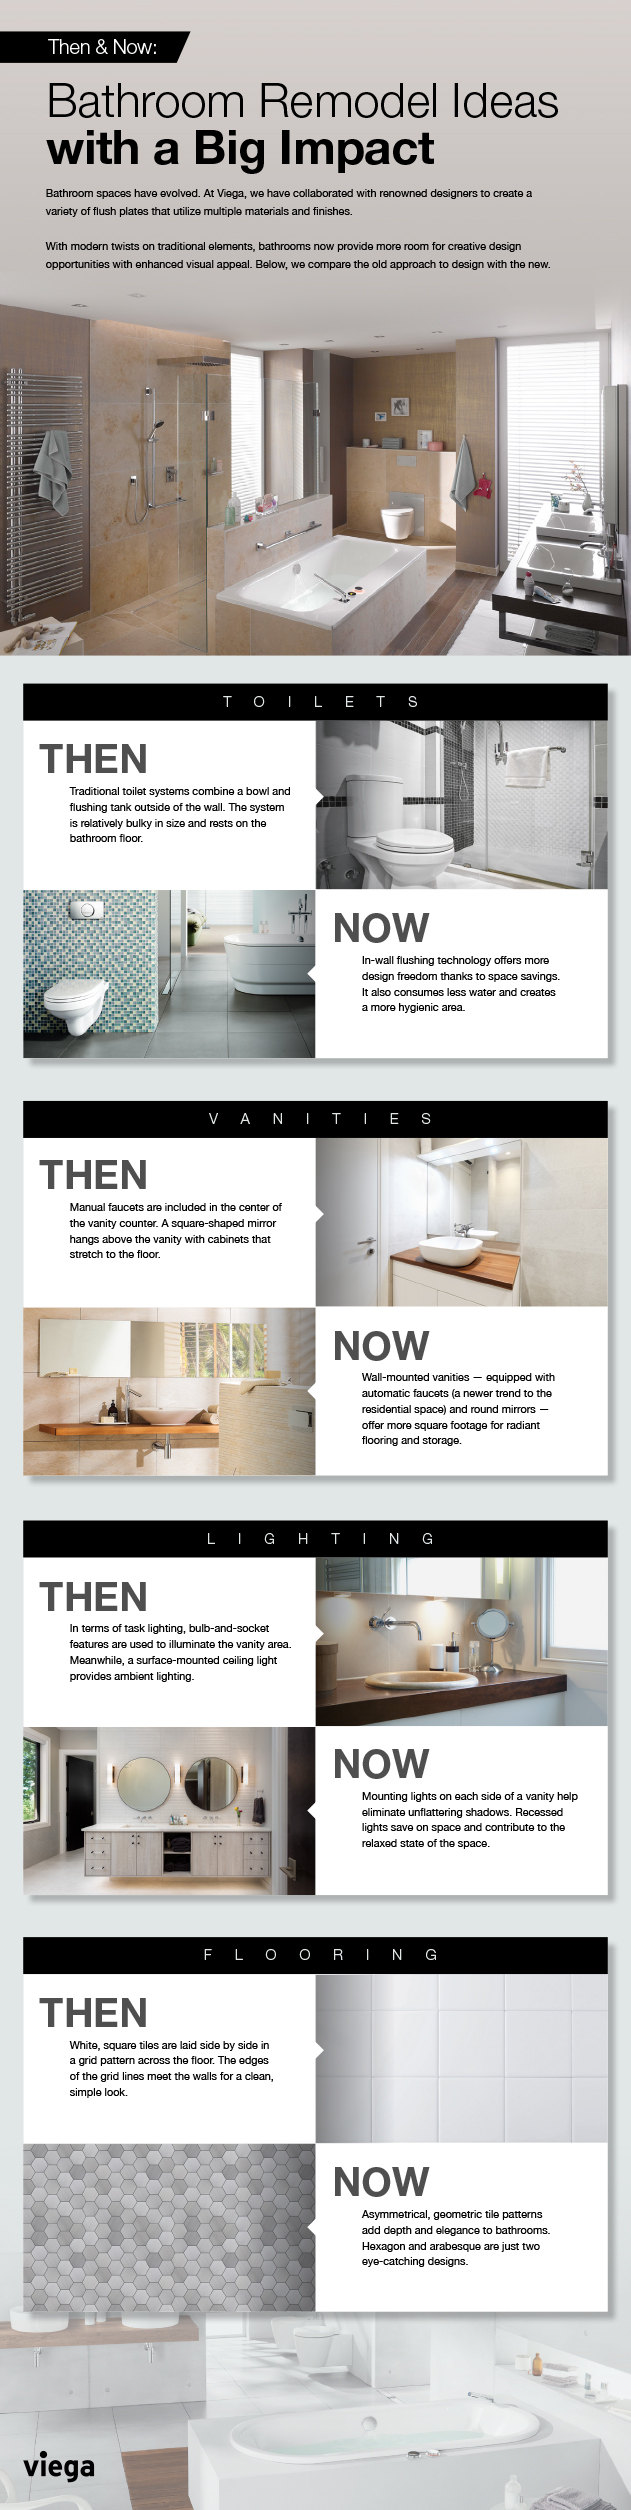 Then&NowBathroomInfoV2